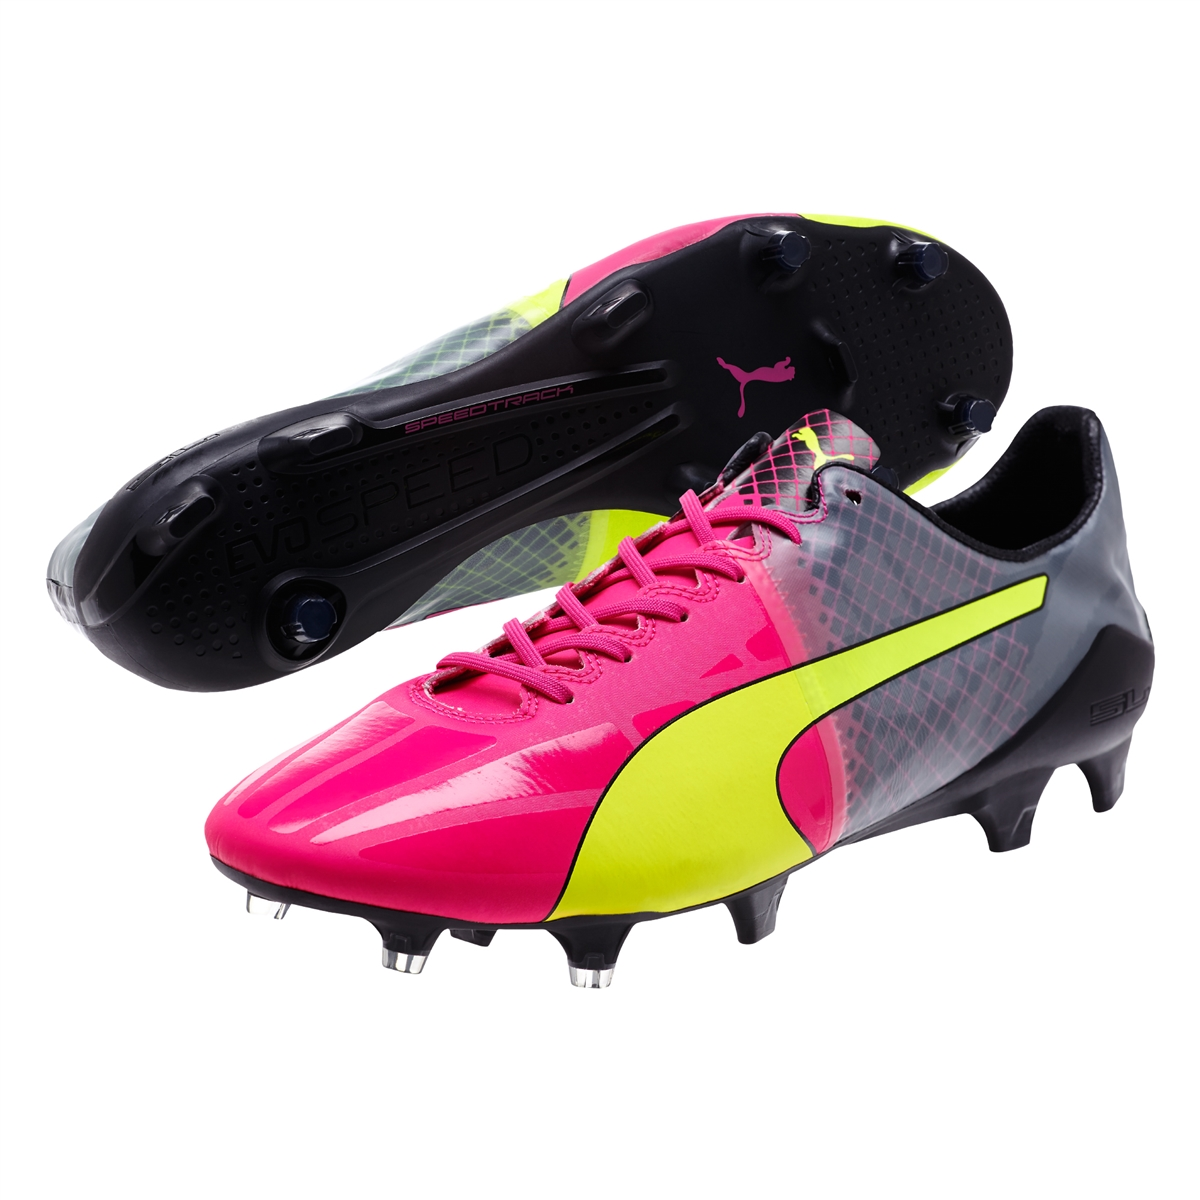 puma evospeed 1.5 tricks